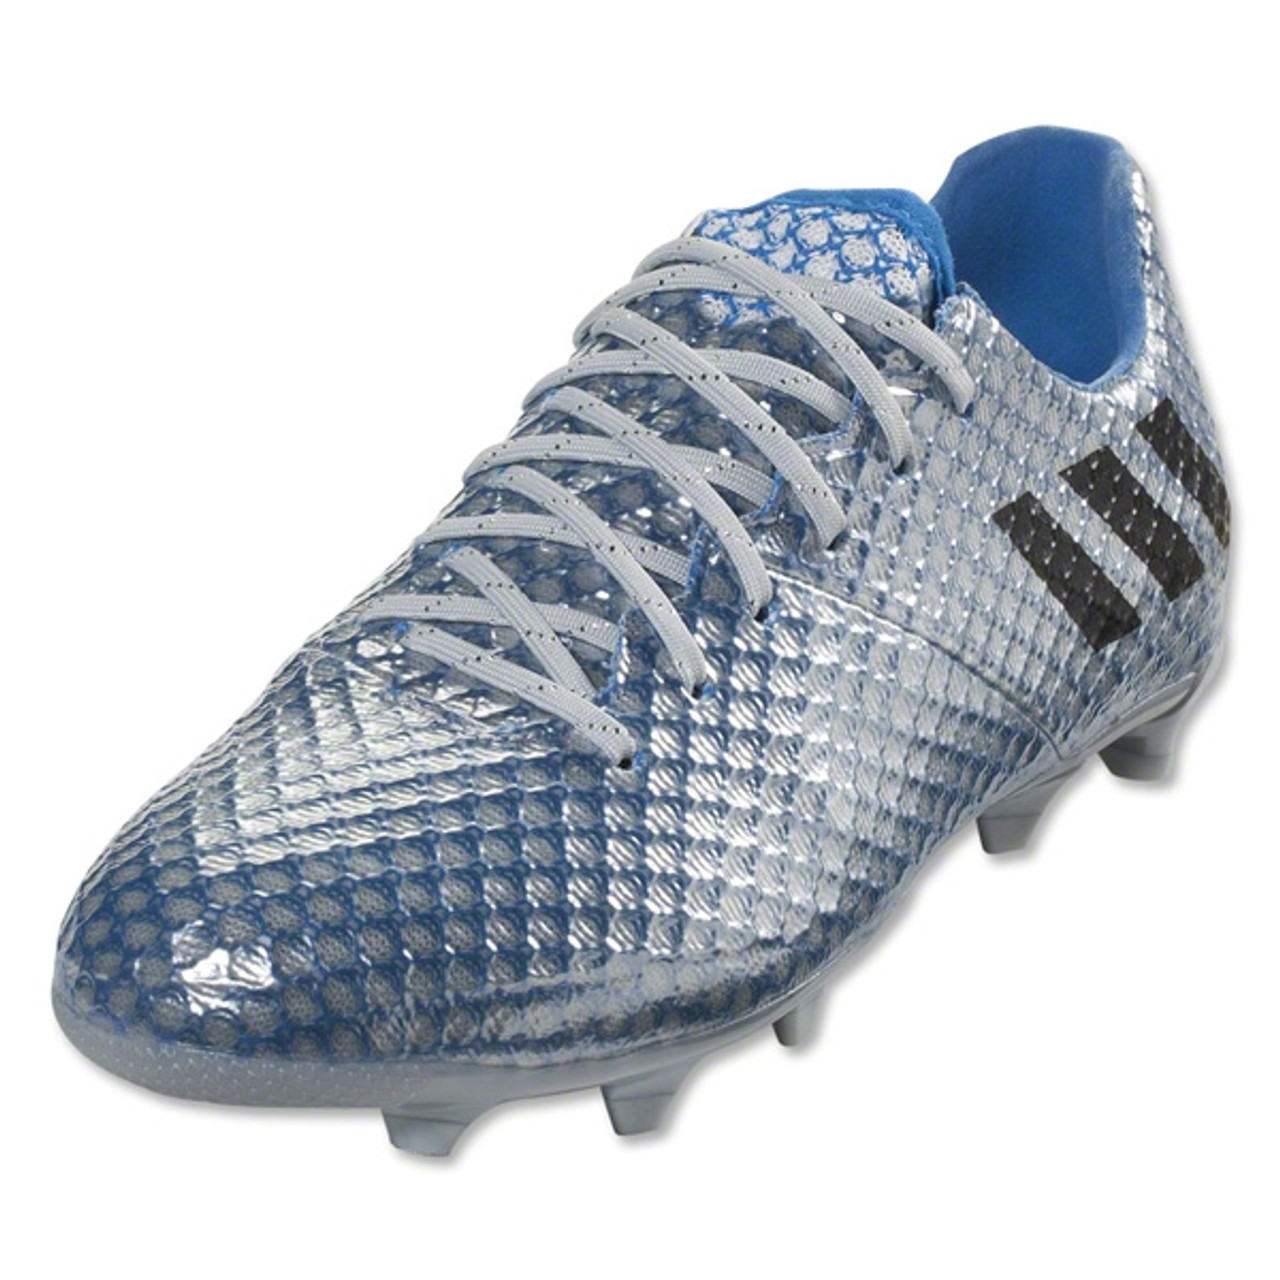 5ea57449dfb ... adidas messi 16.1 fg junior firm ground cleats silver blue